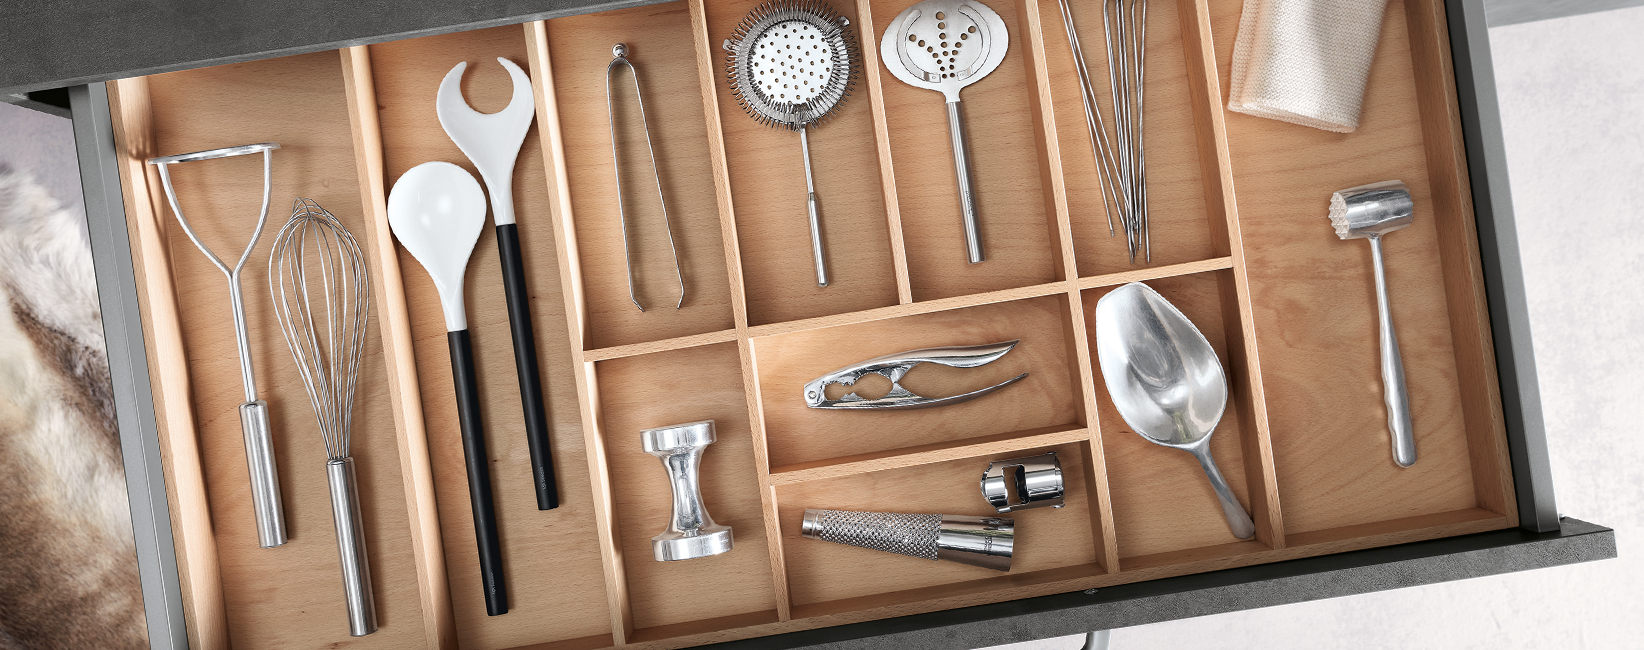 Kitchen Draw Set Out With Utensils